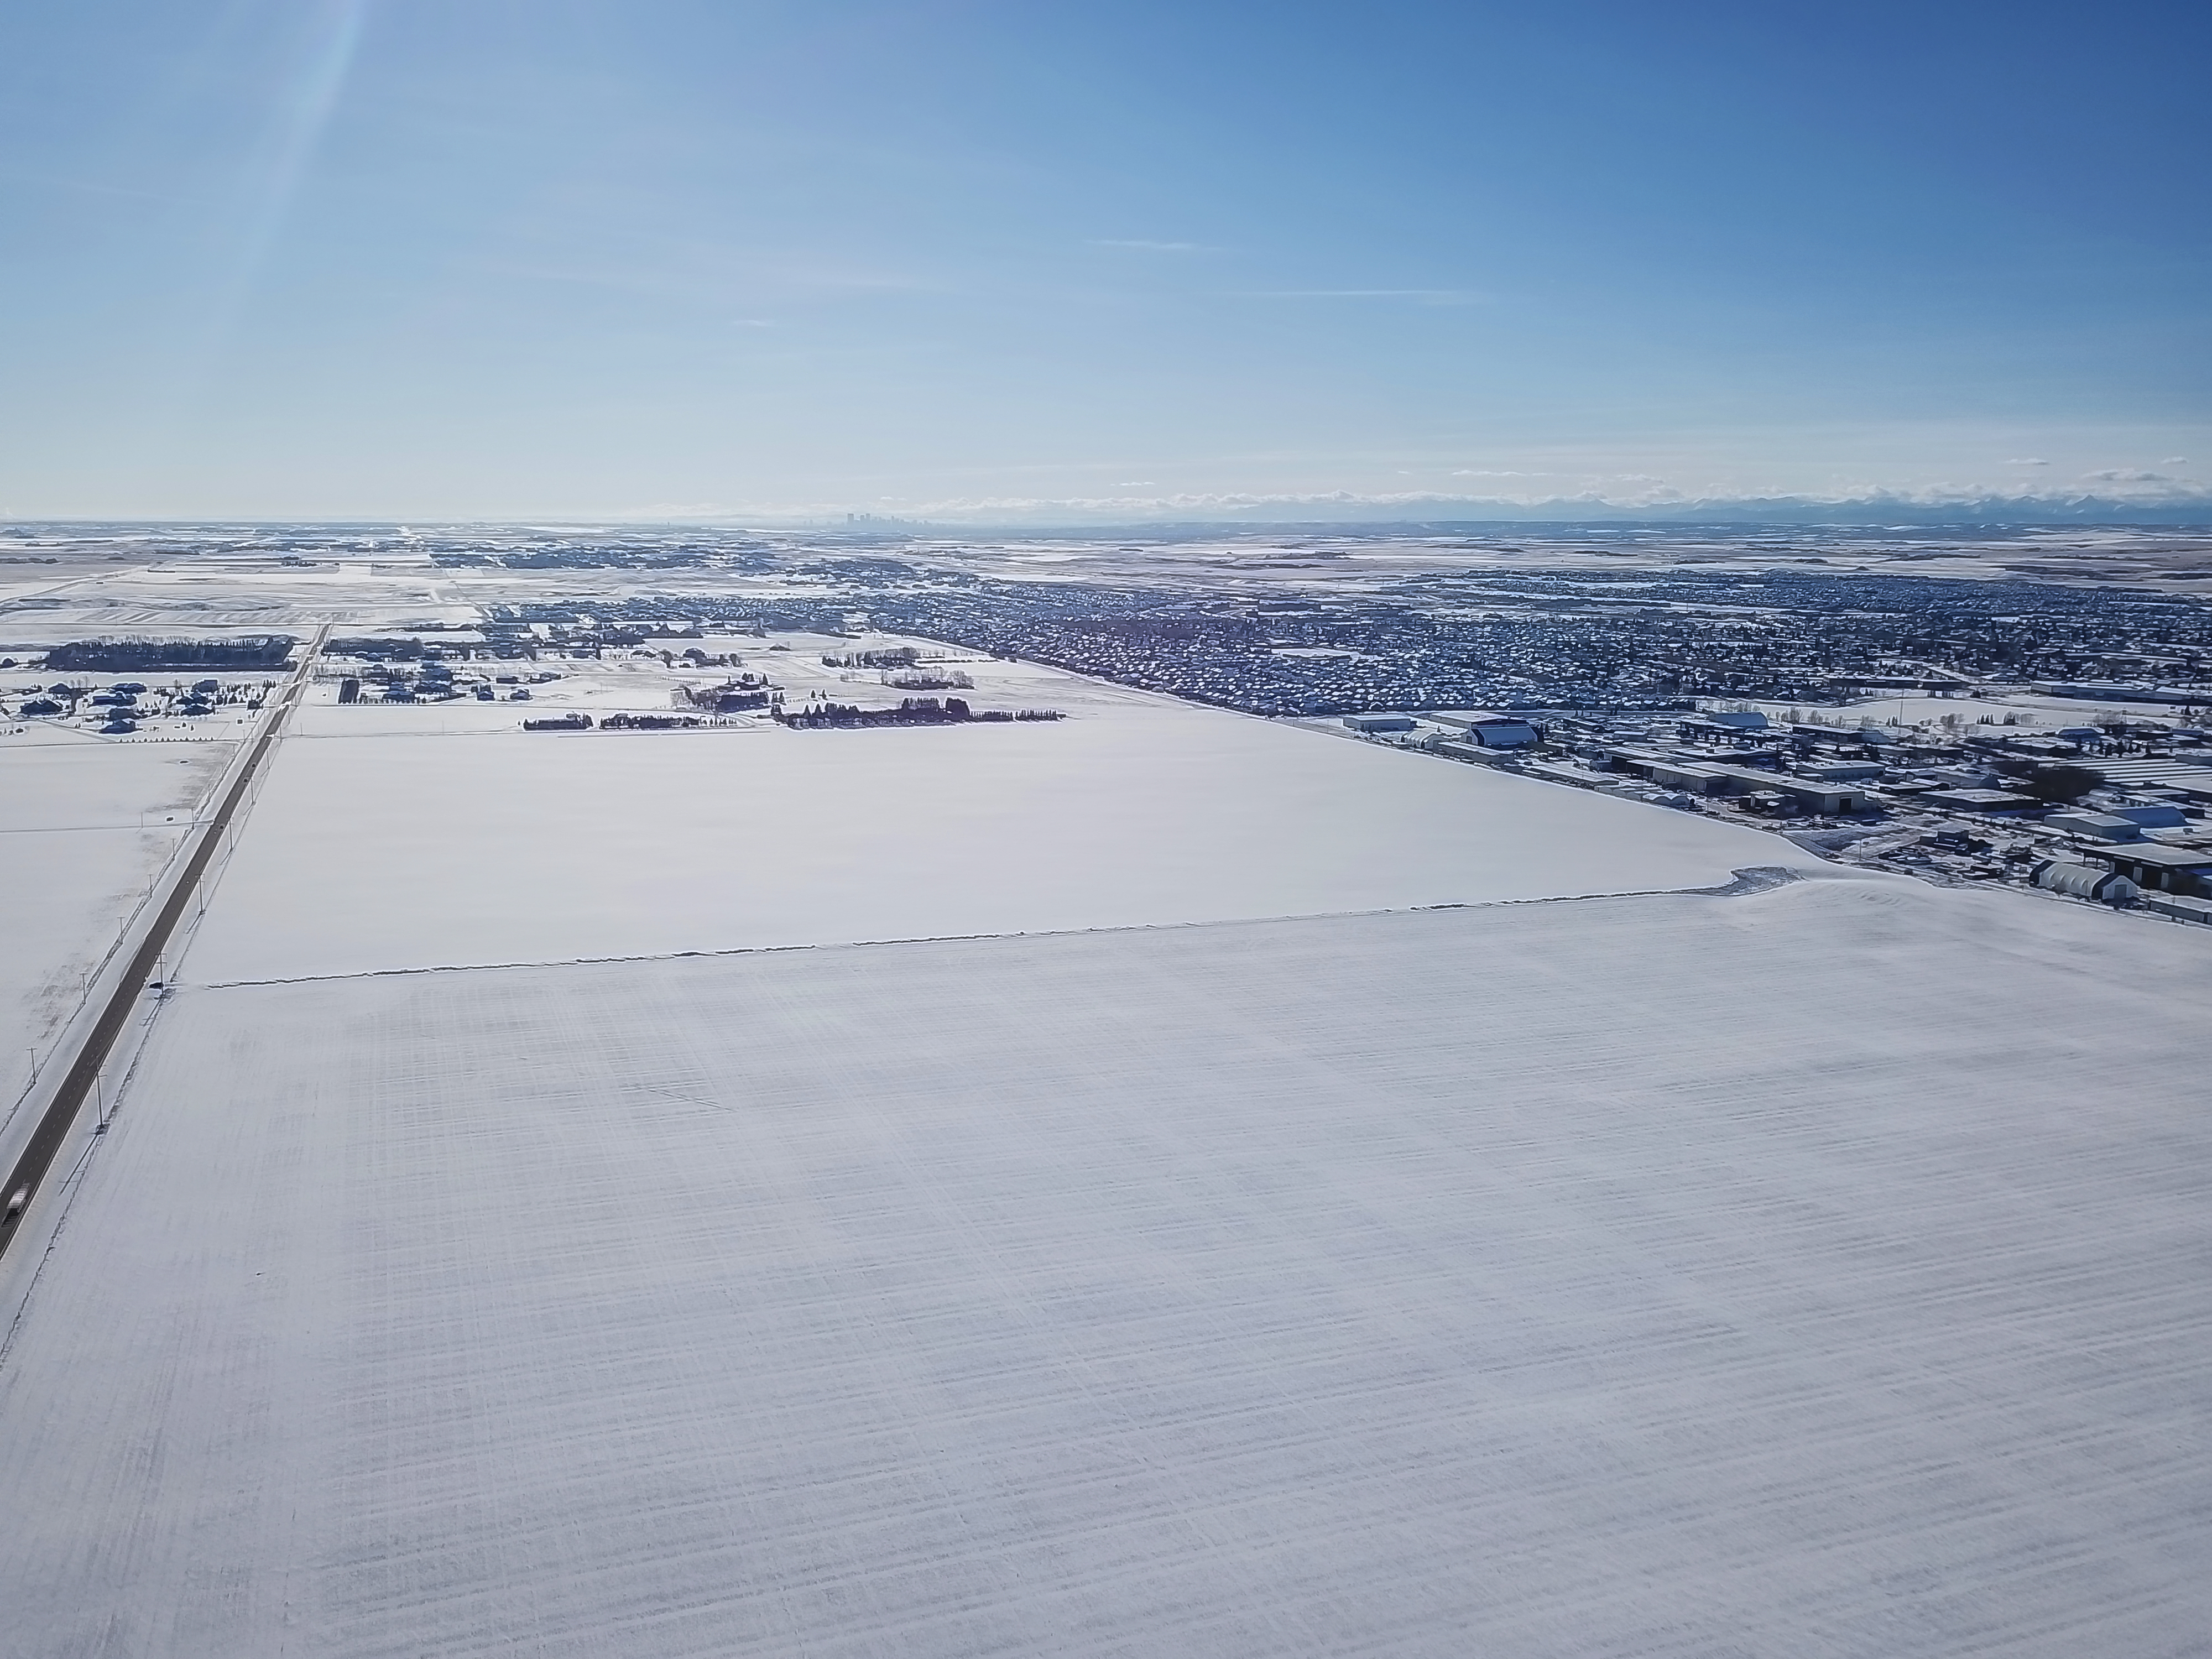 Land For Sale in Airdrie Alberta